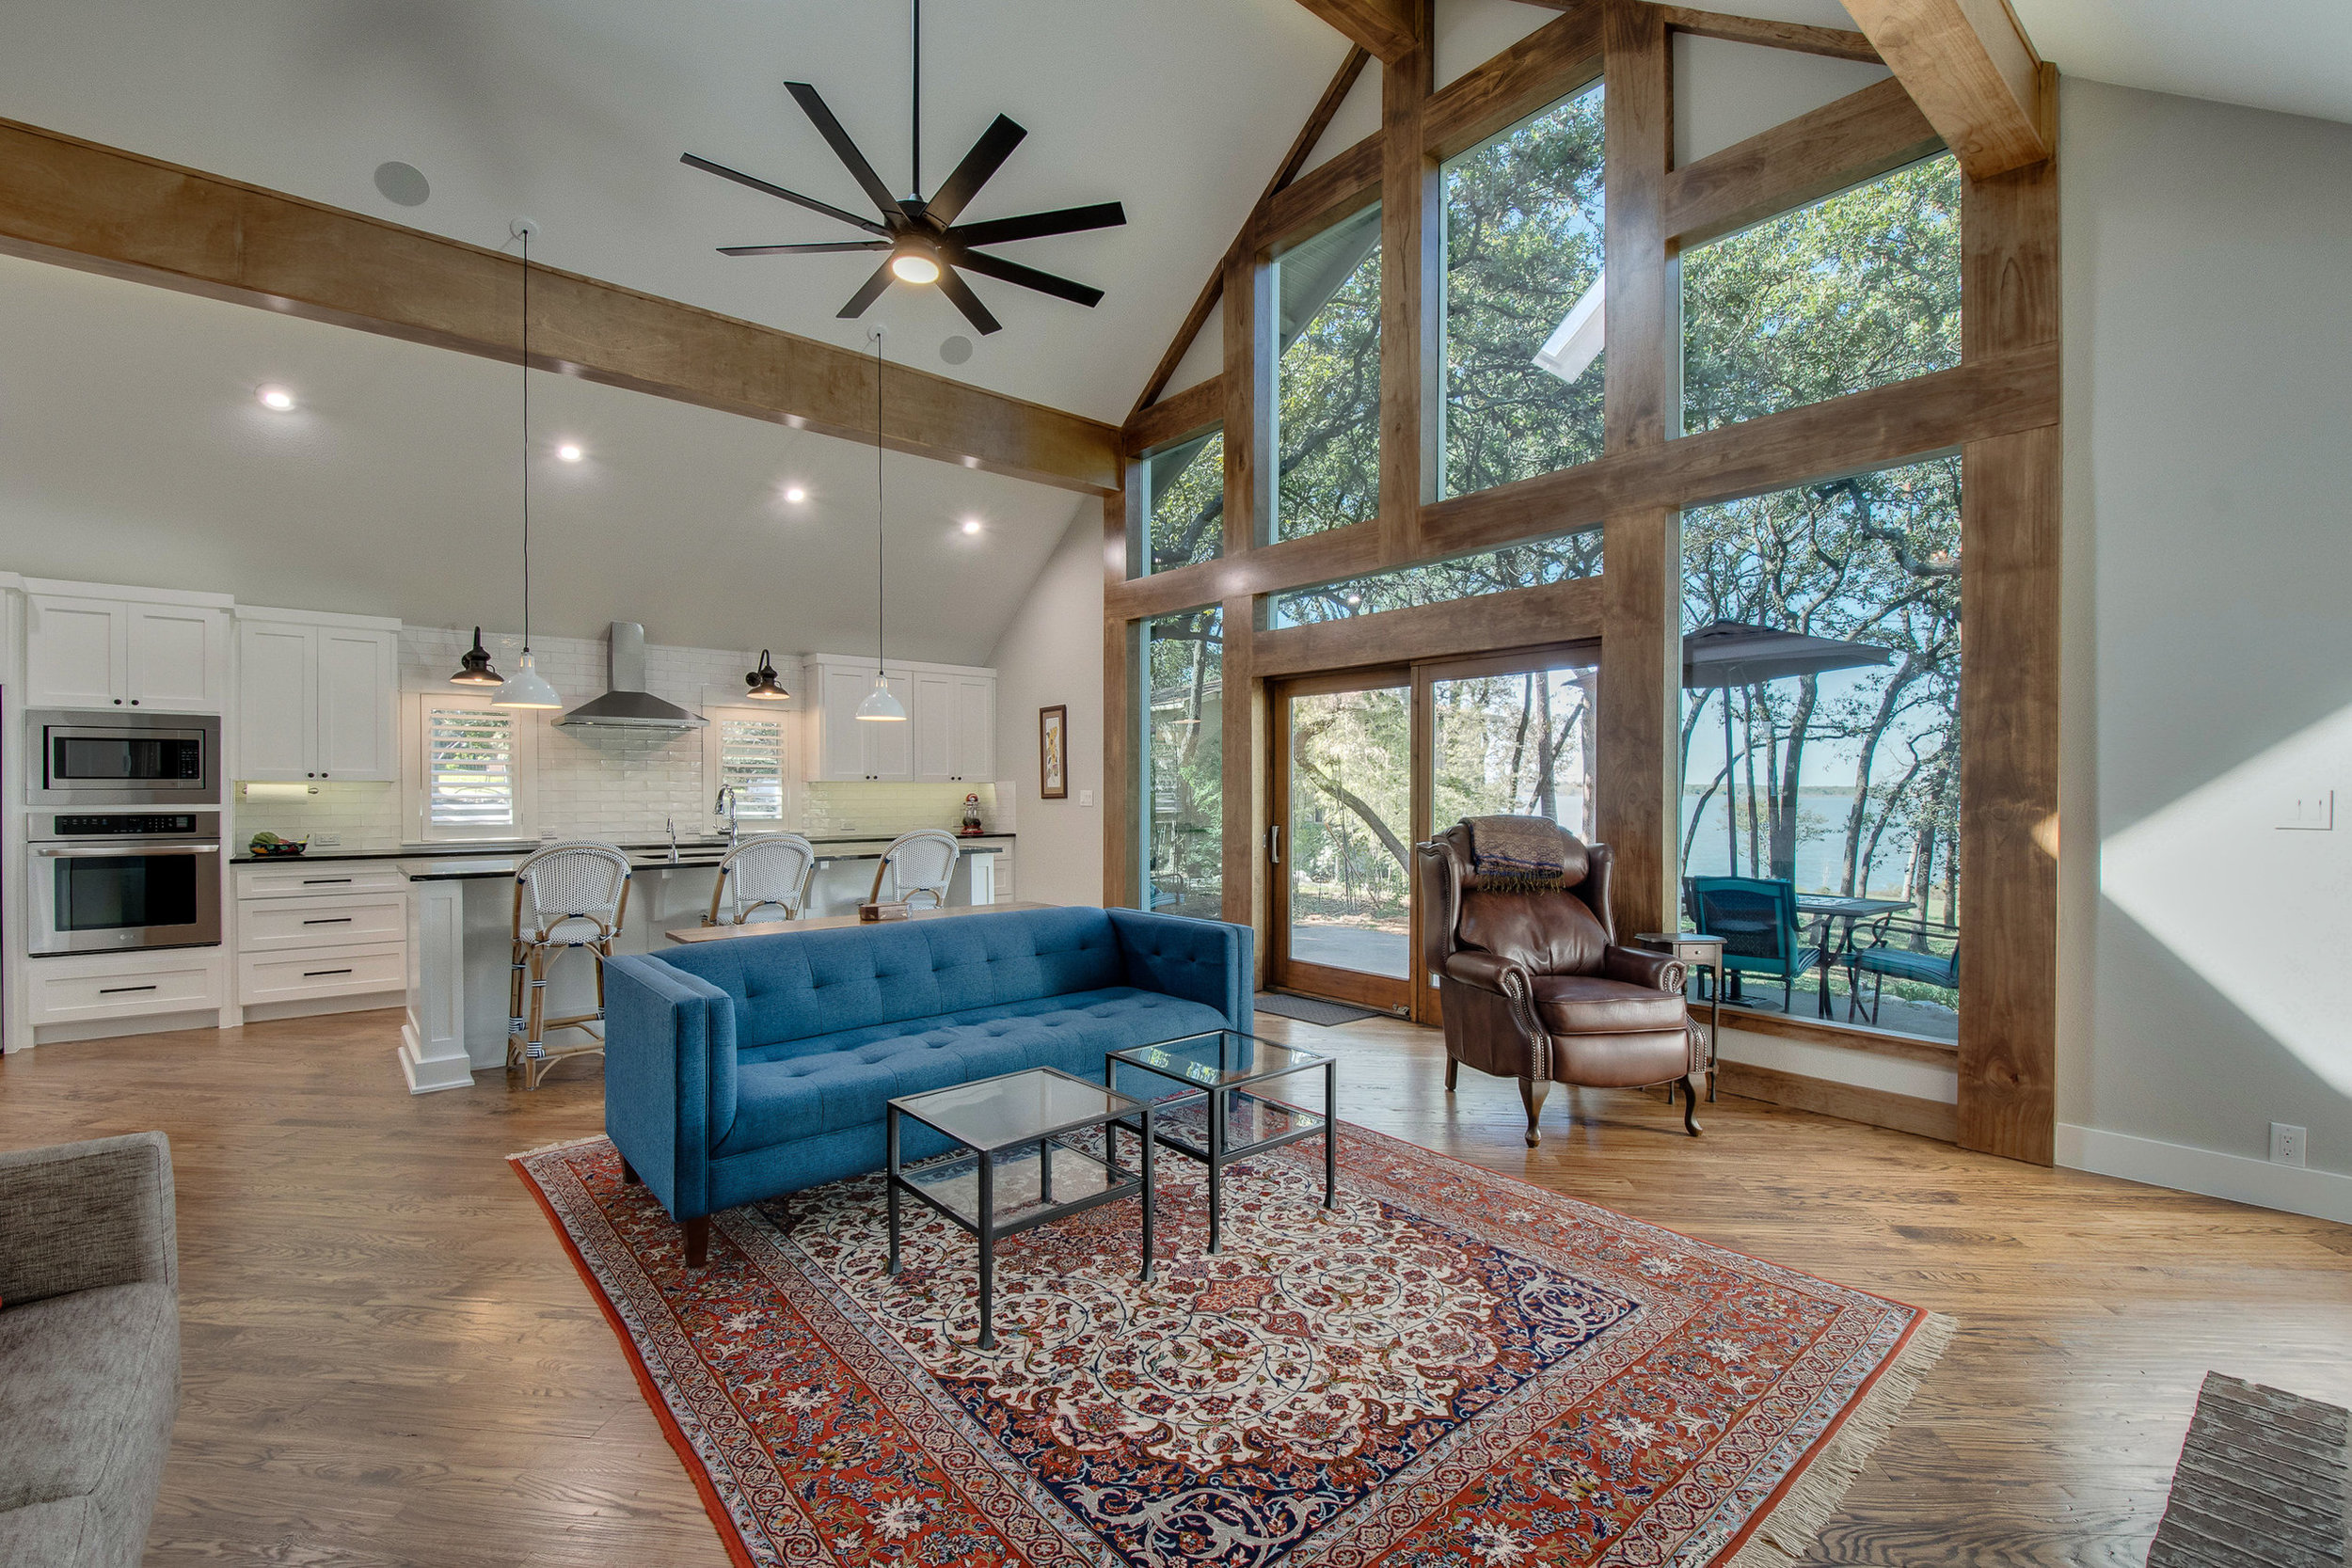 Home remodeling in Texas